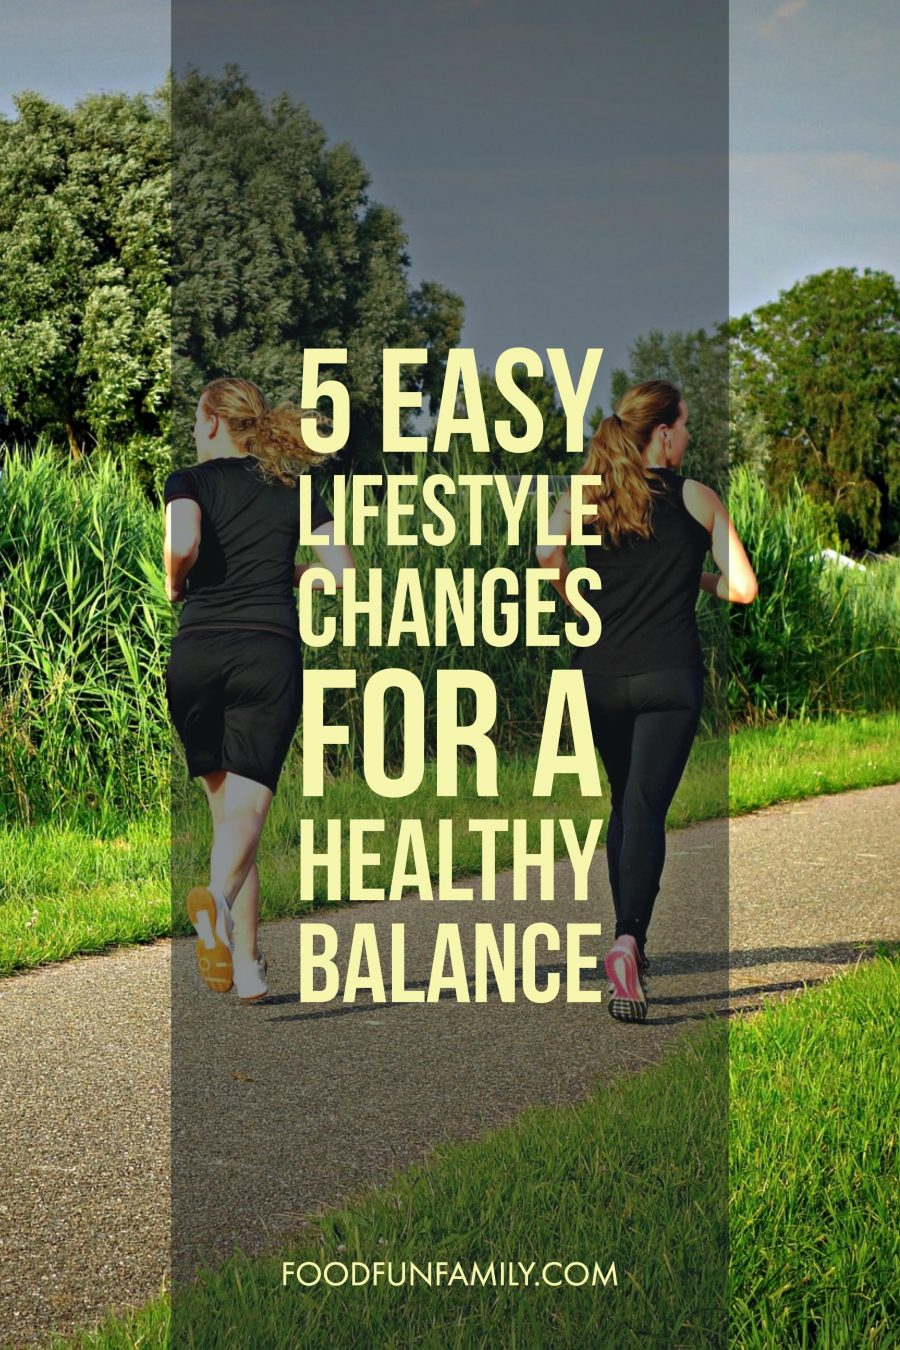 Five Easy Lifestyle Changes for a Healthy Balance - forget New Year's Resolutions and goals you'll never keep. These tips are easy to follow and make a huge difference in the way you feel.